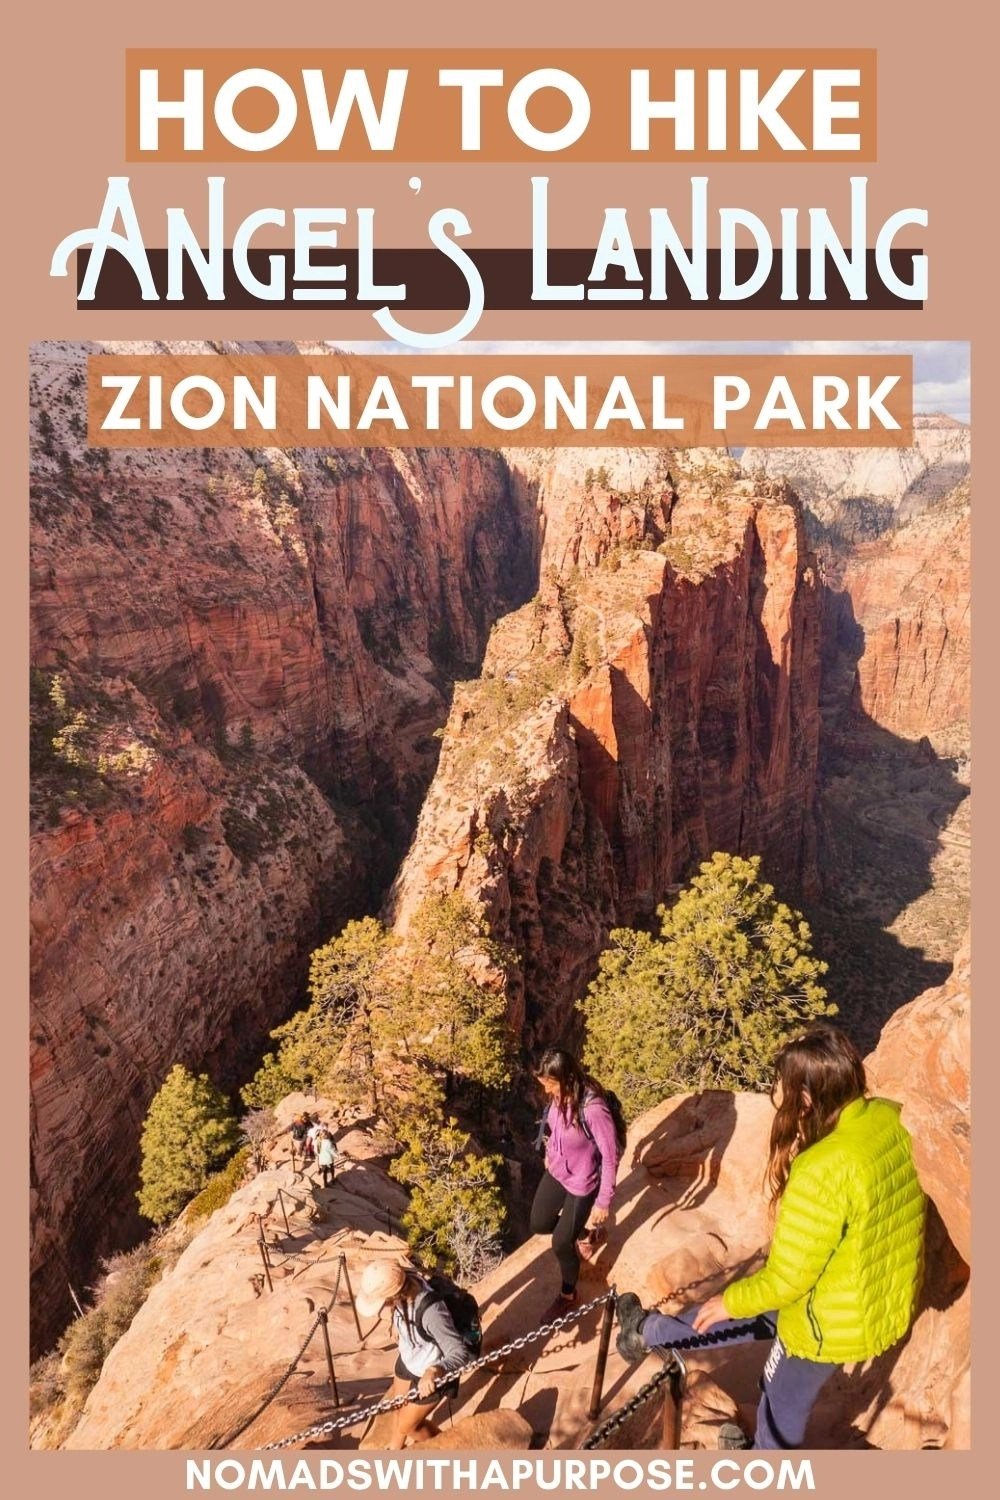 How to Hike Angel's Landing in Zion National Park